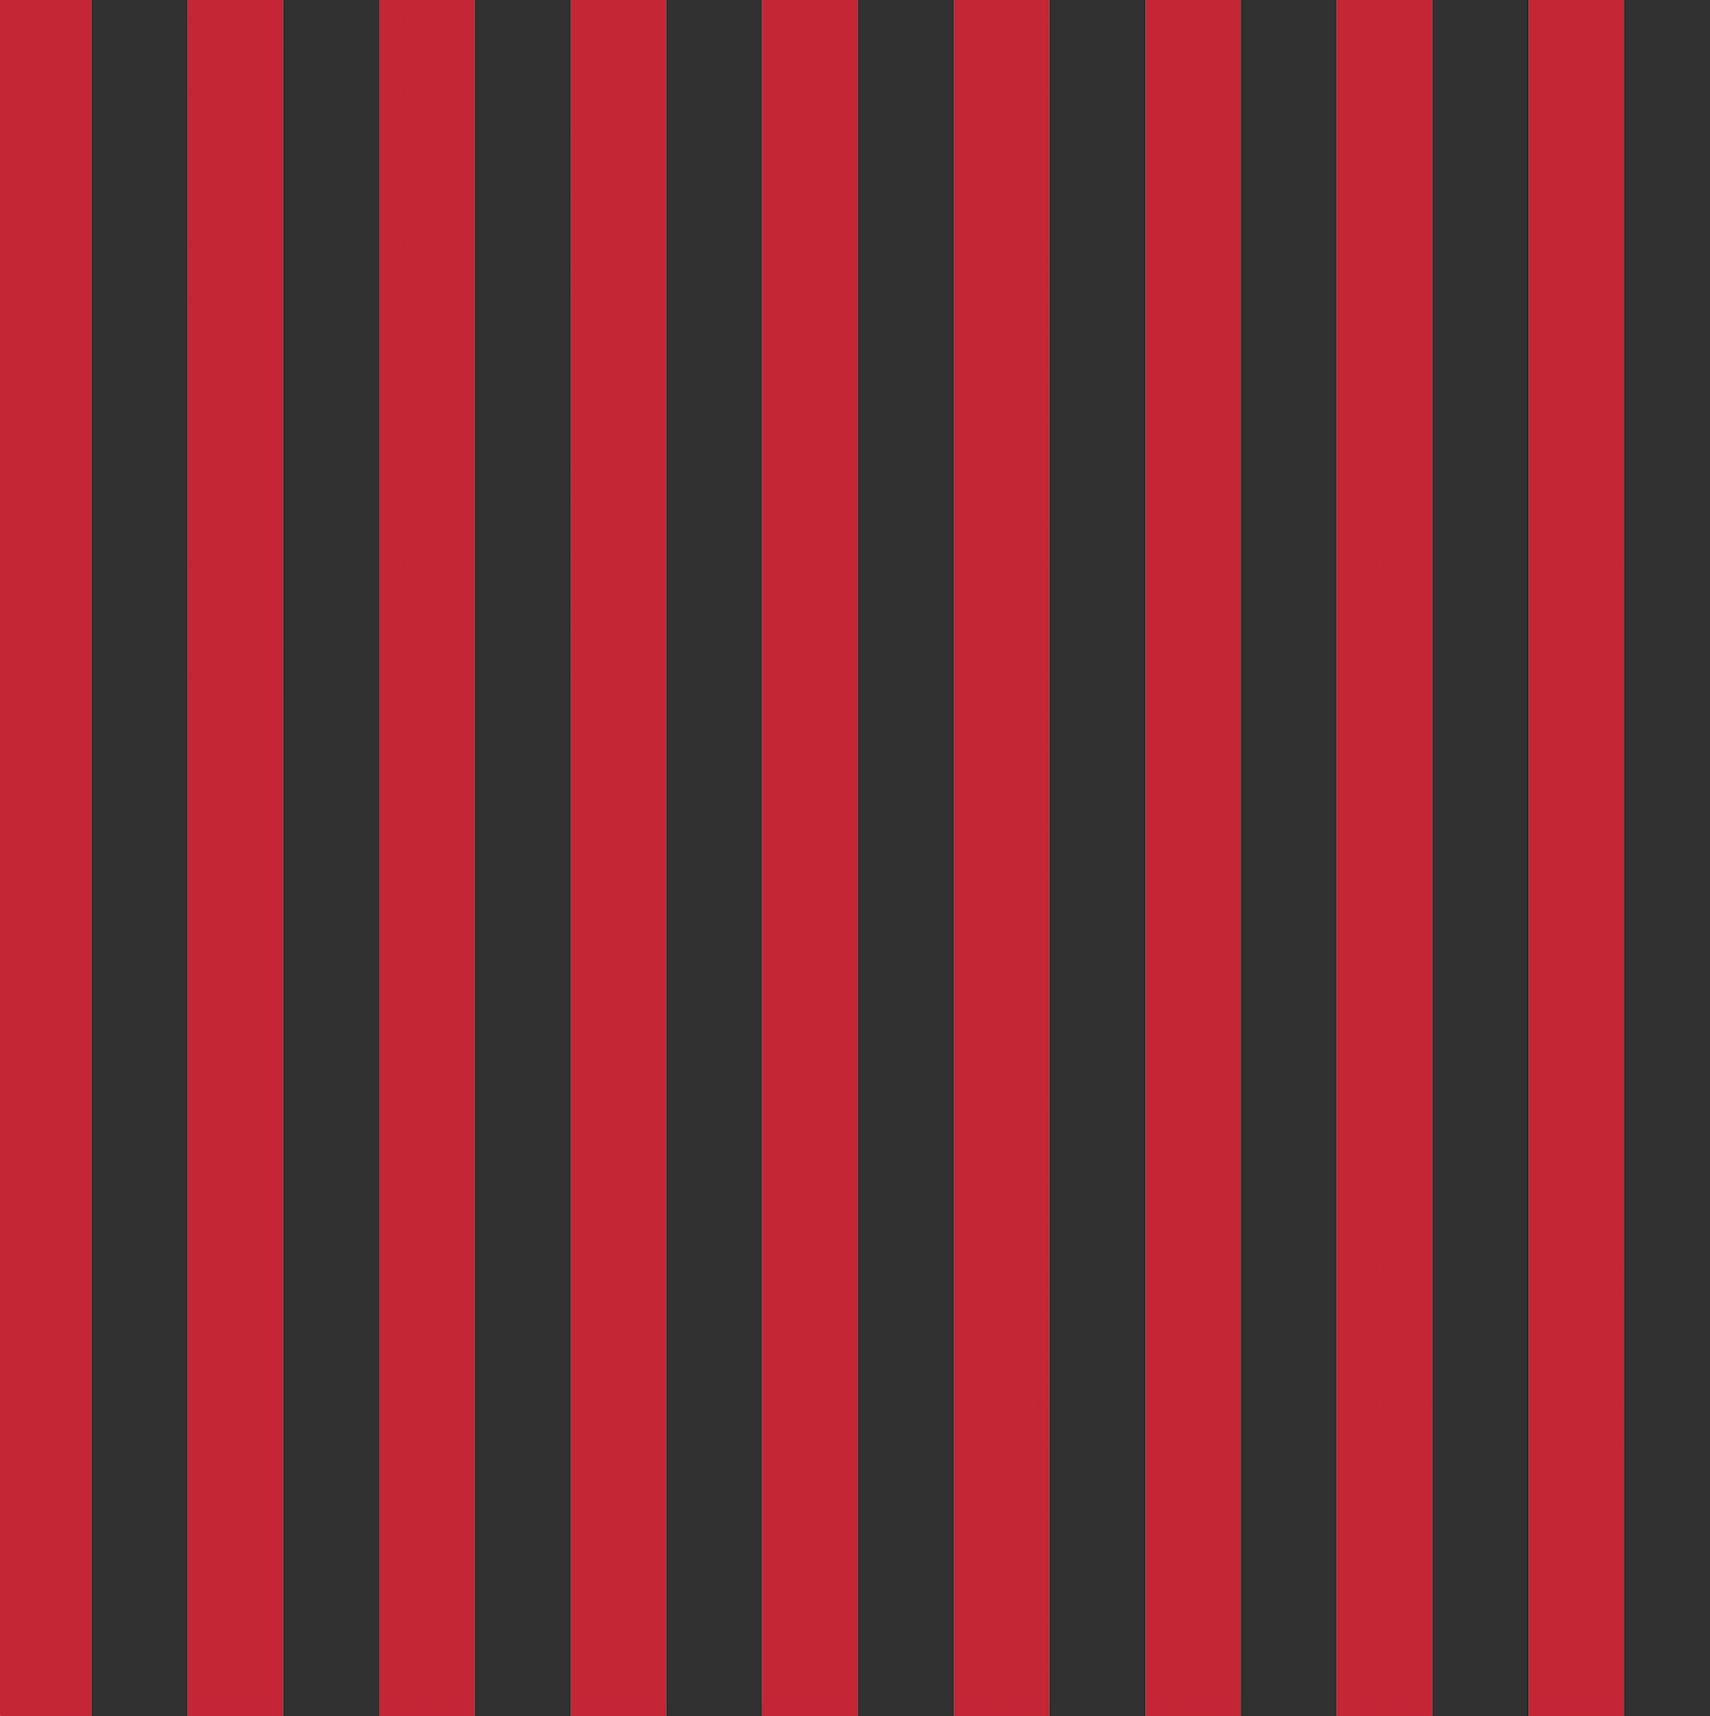 Burtonesque Wonderland - Red and Black Striped - Bodysuit